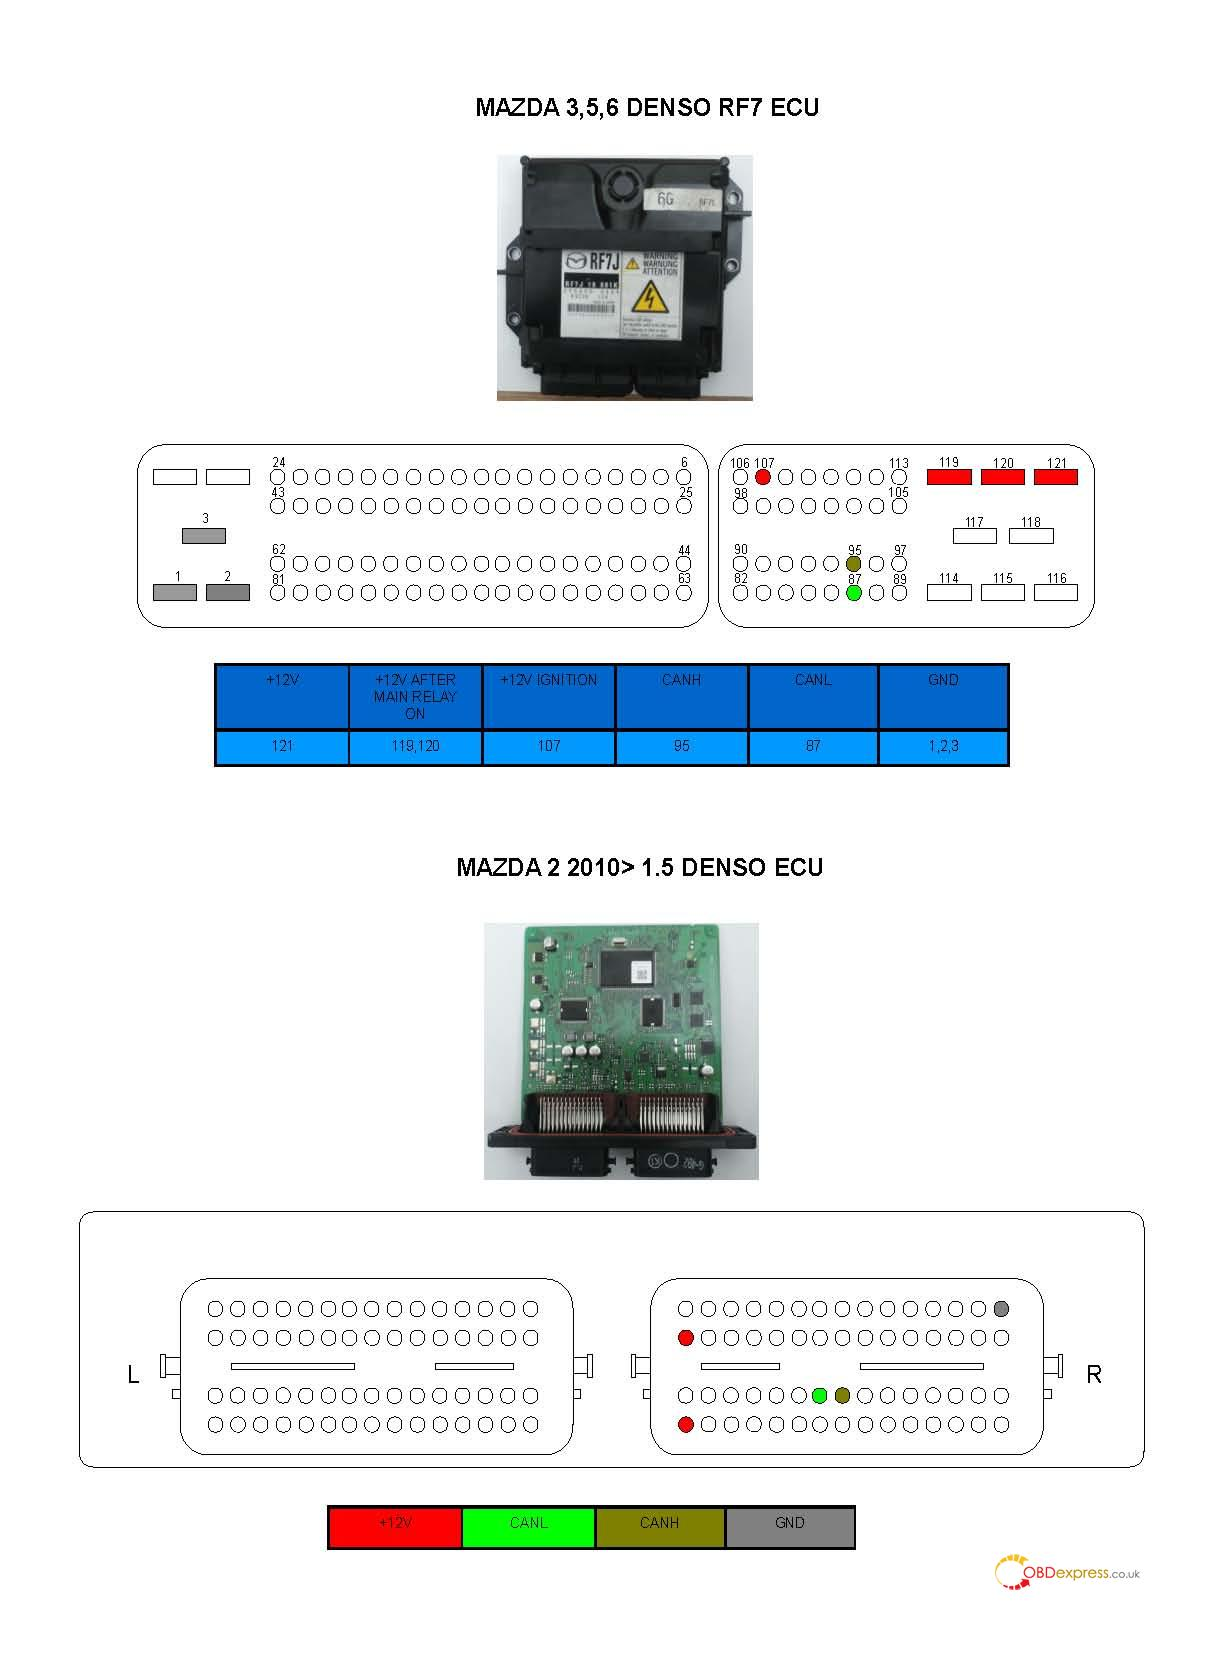 pinout-for-mpps-v18-09